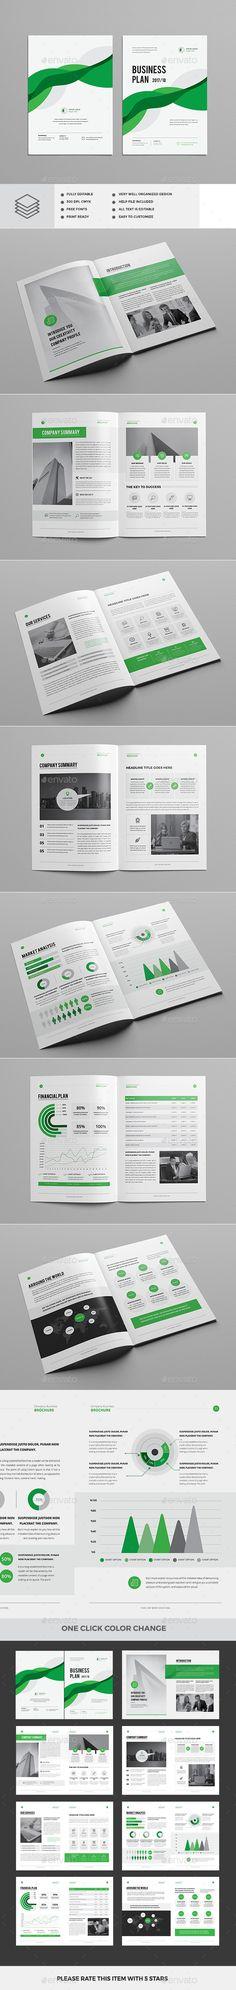 Business Plan 2017 by Pro-Gh Business Plan 2017This InDesign Brochure is Clean